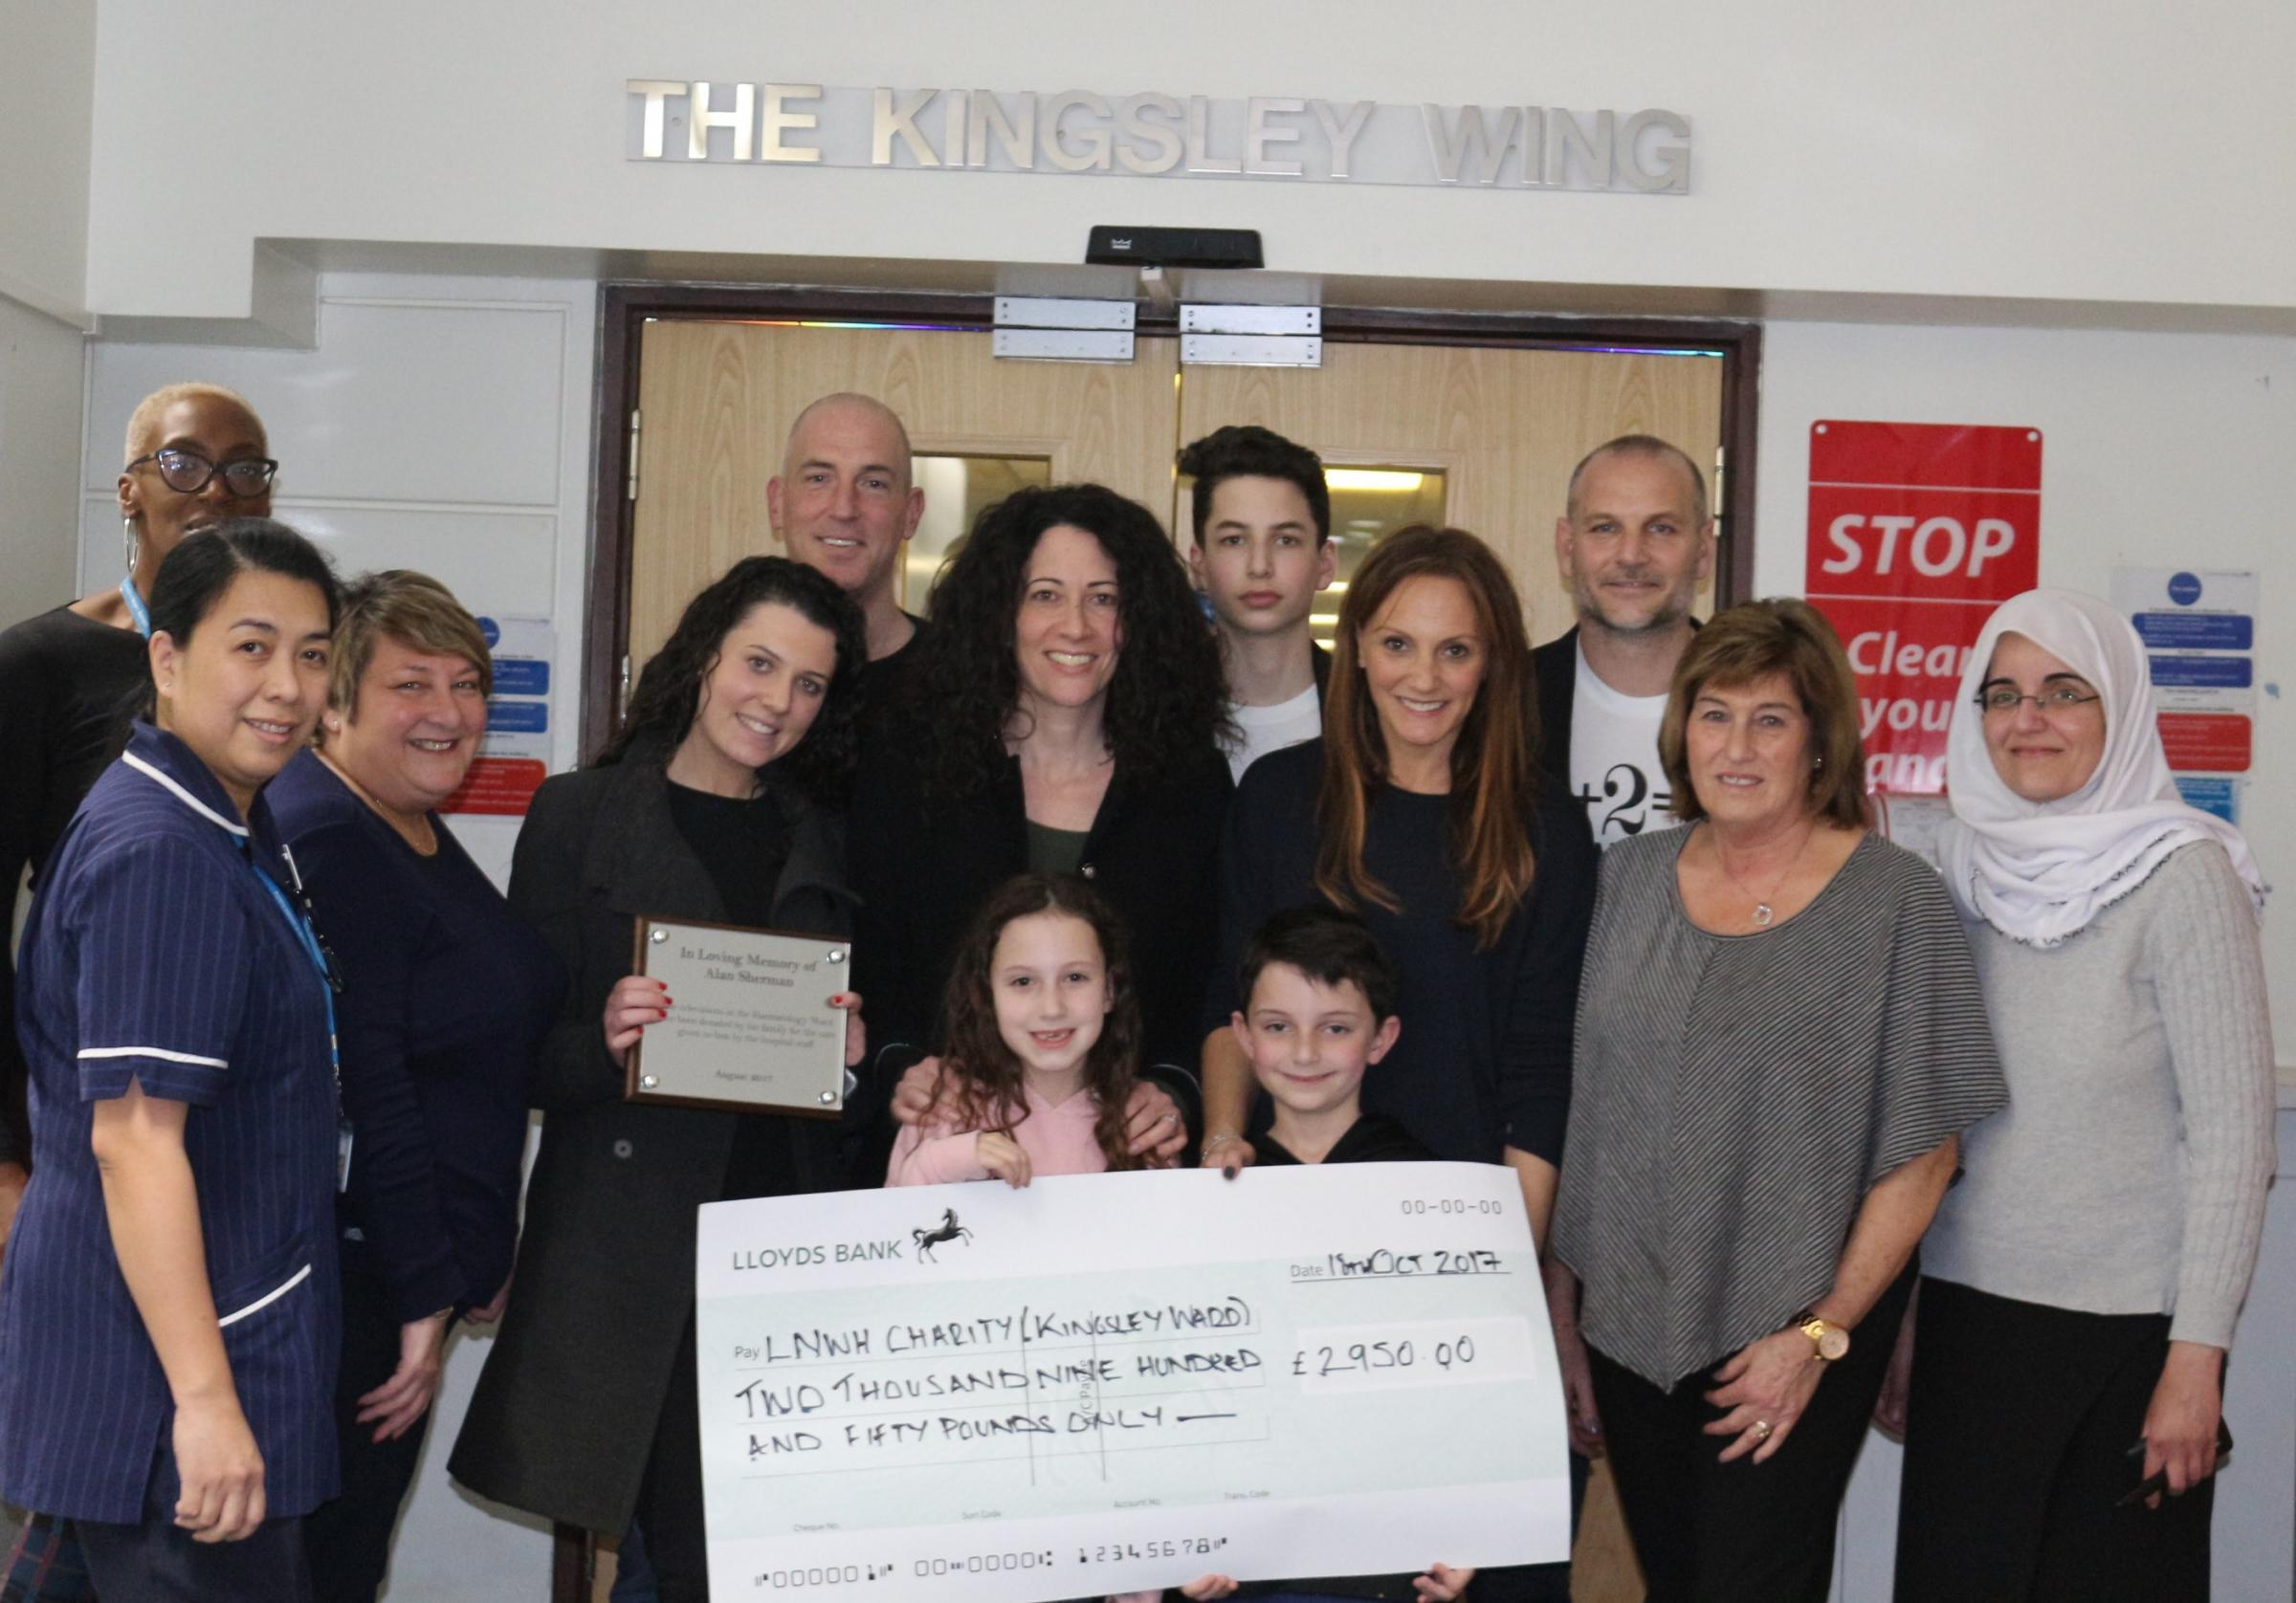 The family presented the nearly £3,000 cheque to the ward last week